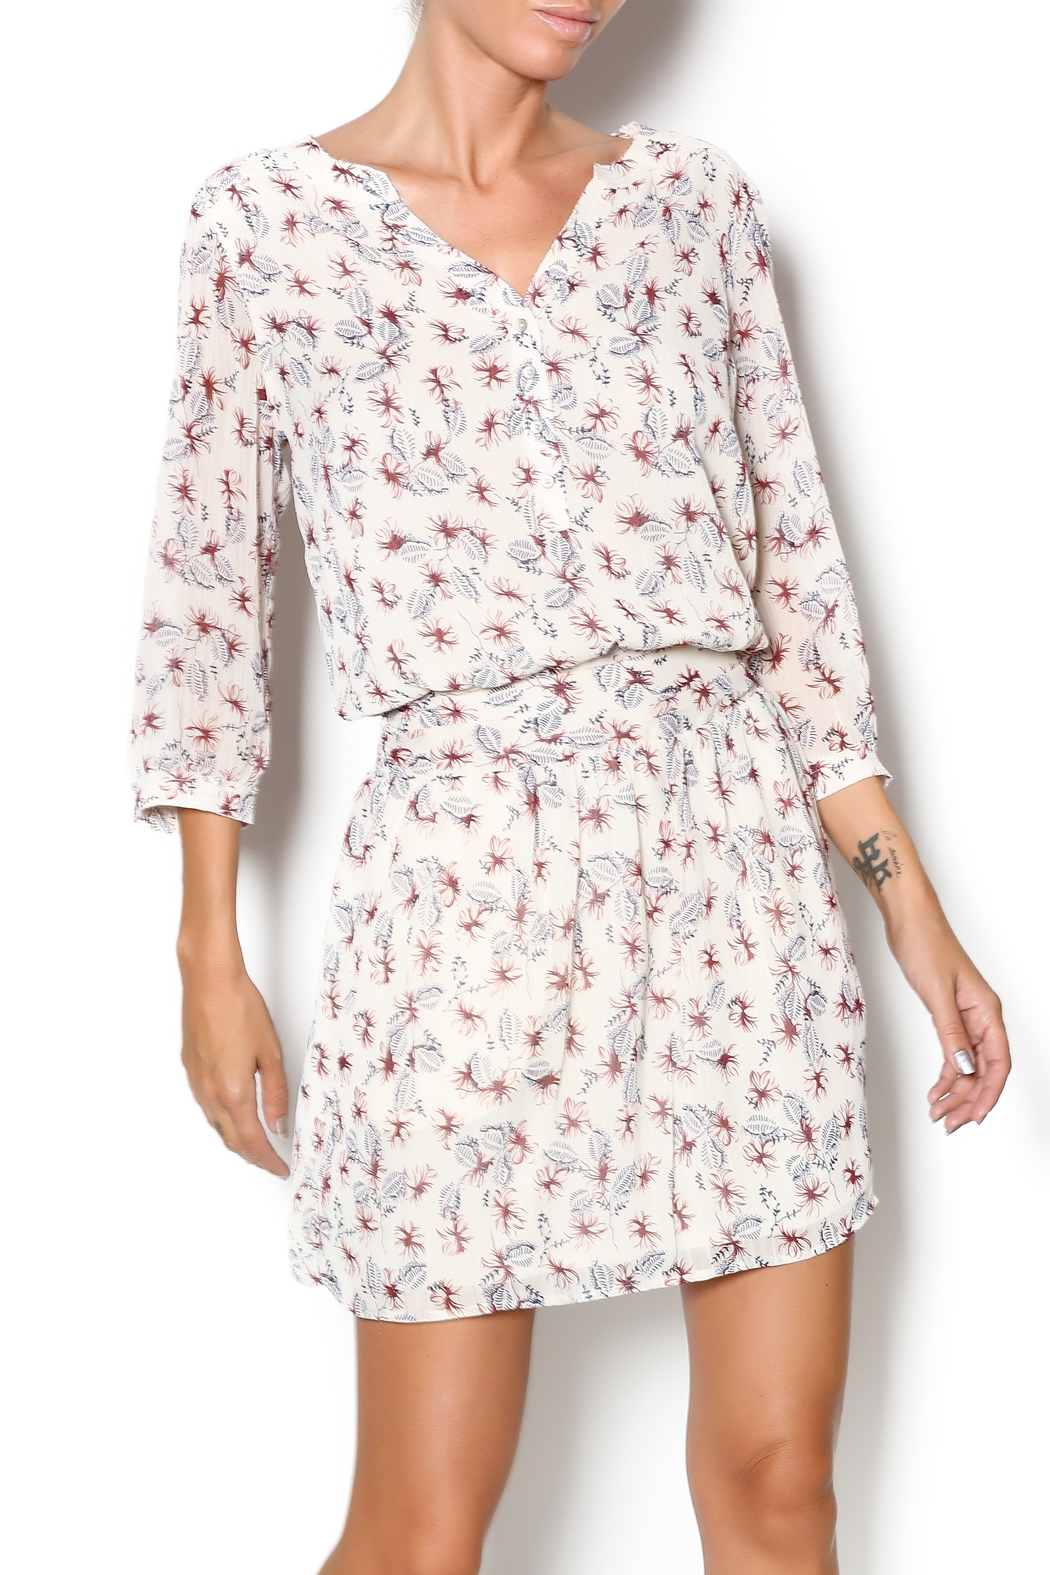 18bf7182c0 Maison Scotch Drop Waist Dress from Marina by y i clothing boutique ...